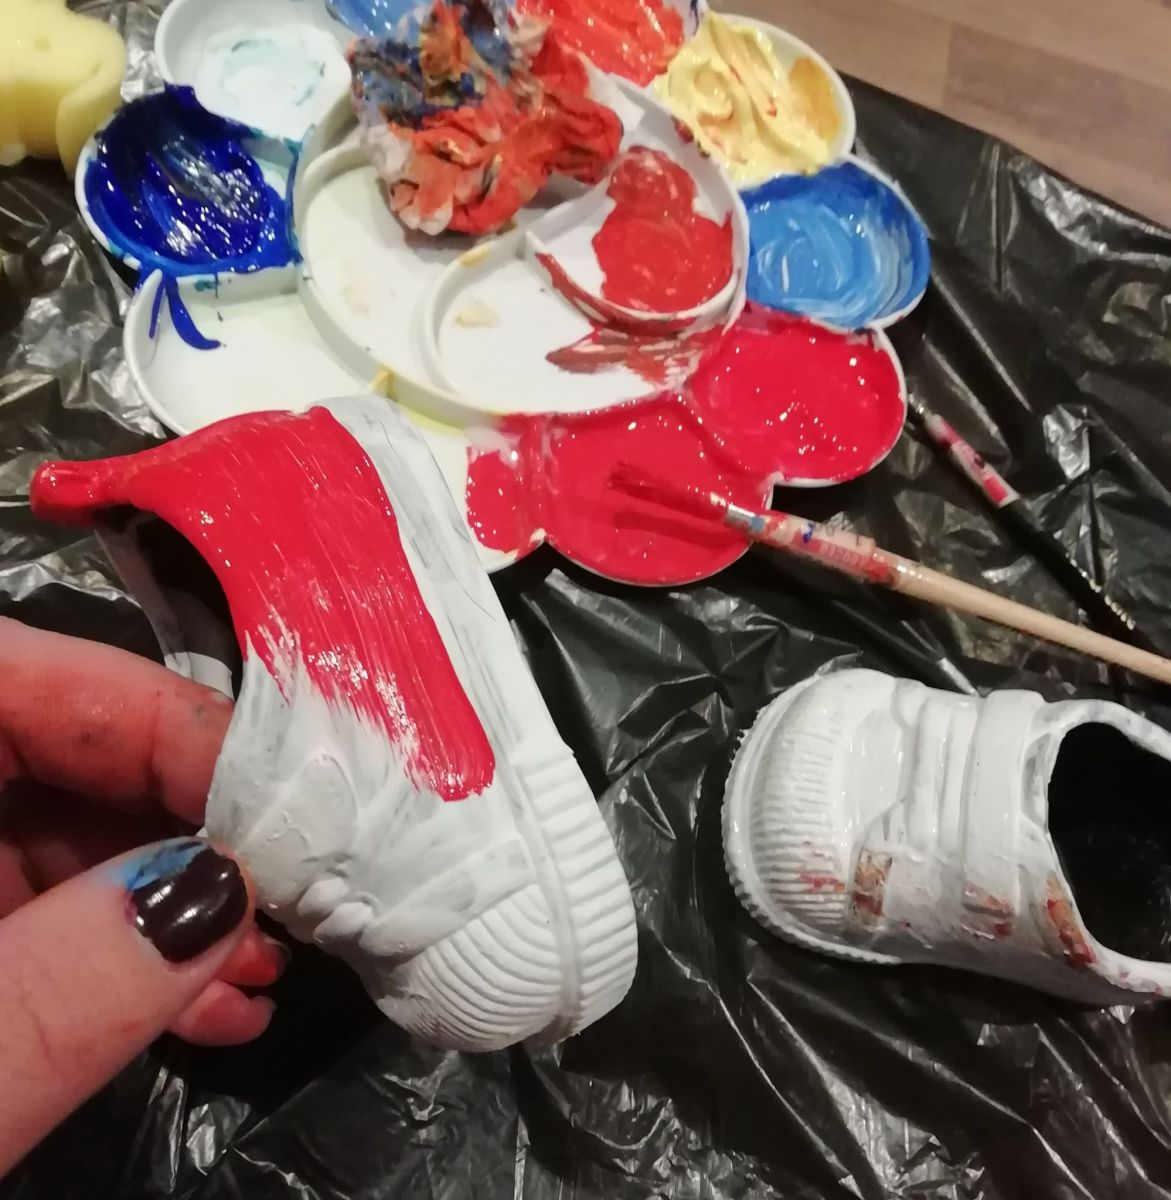 Paint the shoes